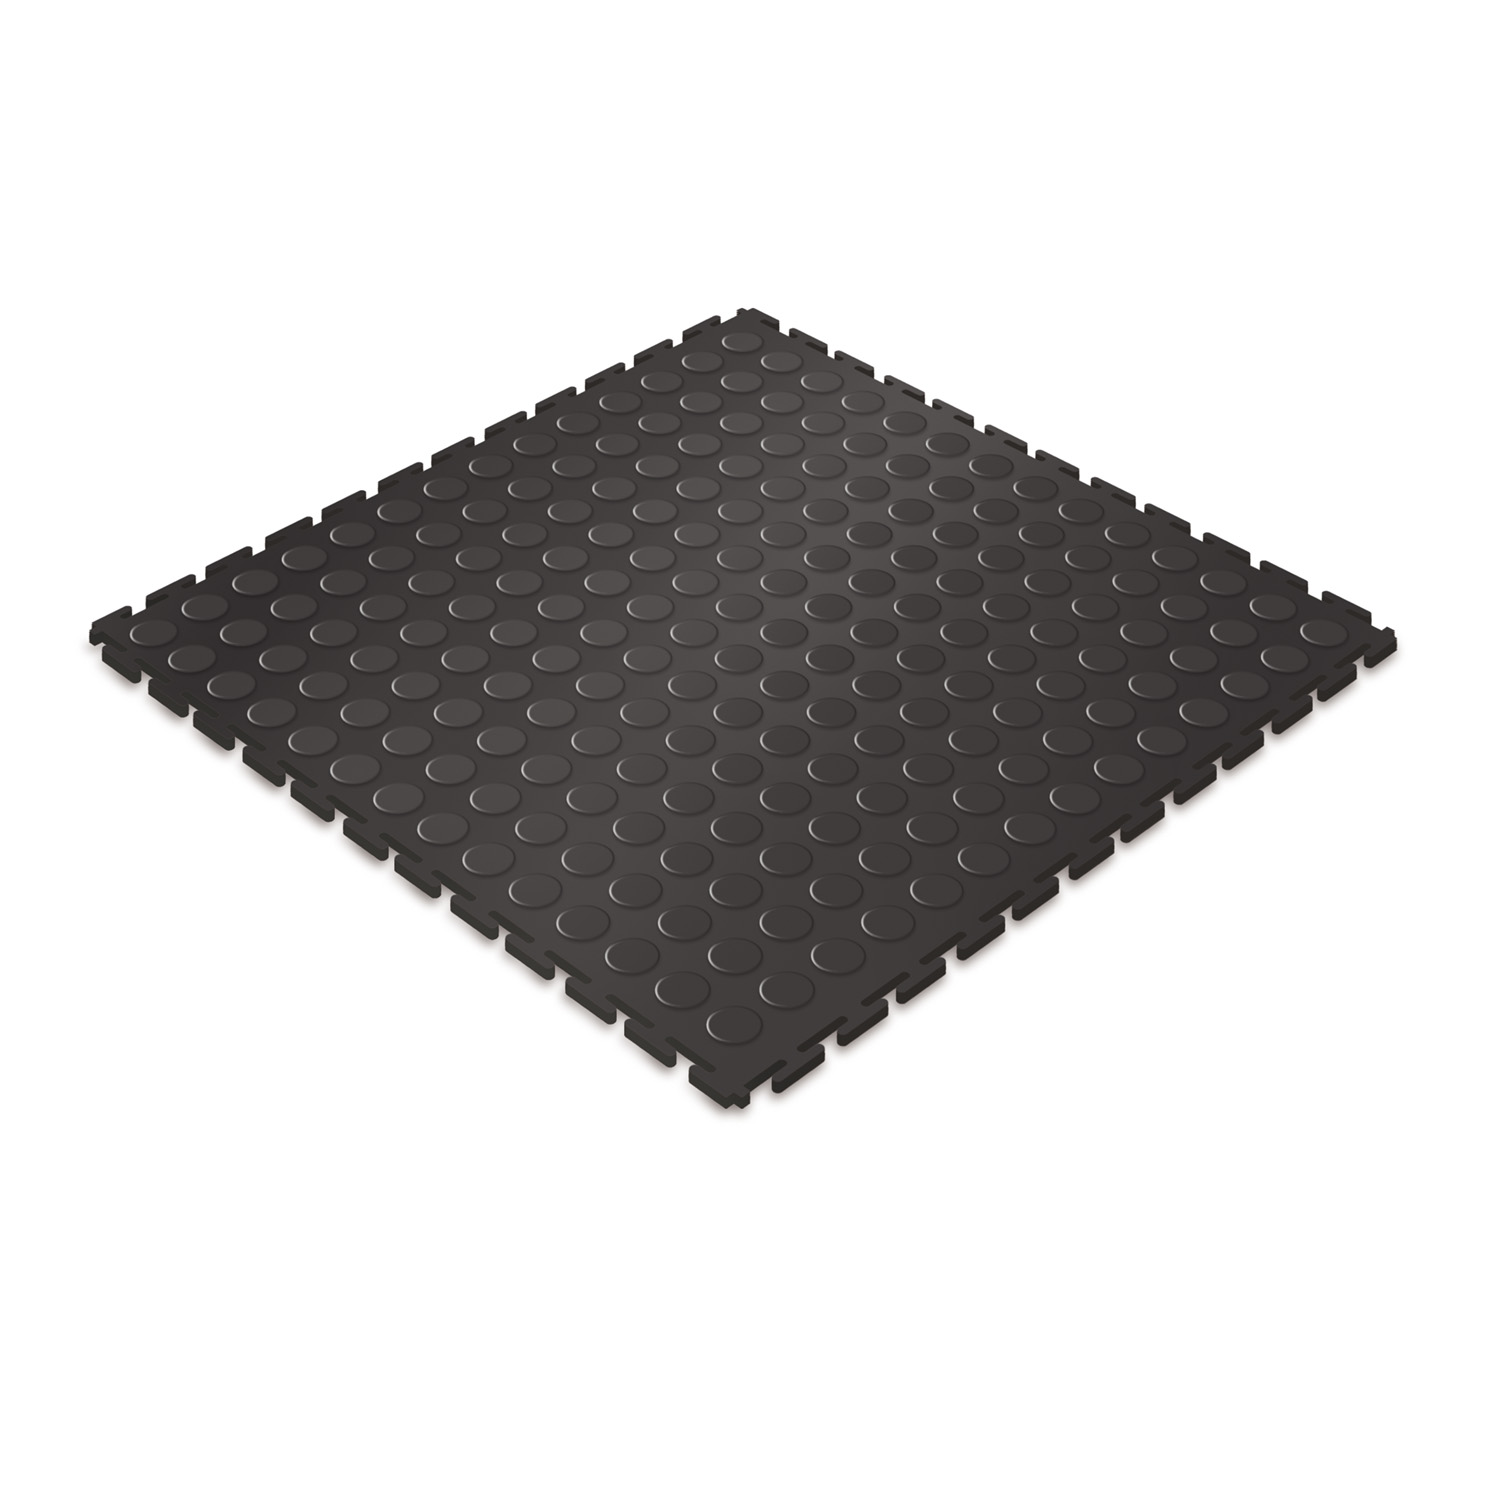 Heavy-duty floor tile (black/studded)